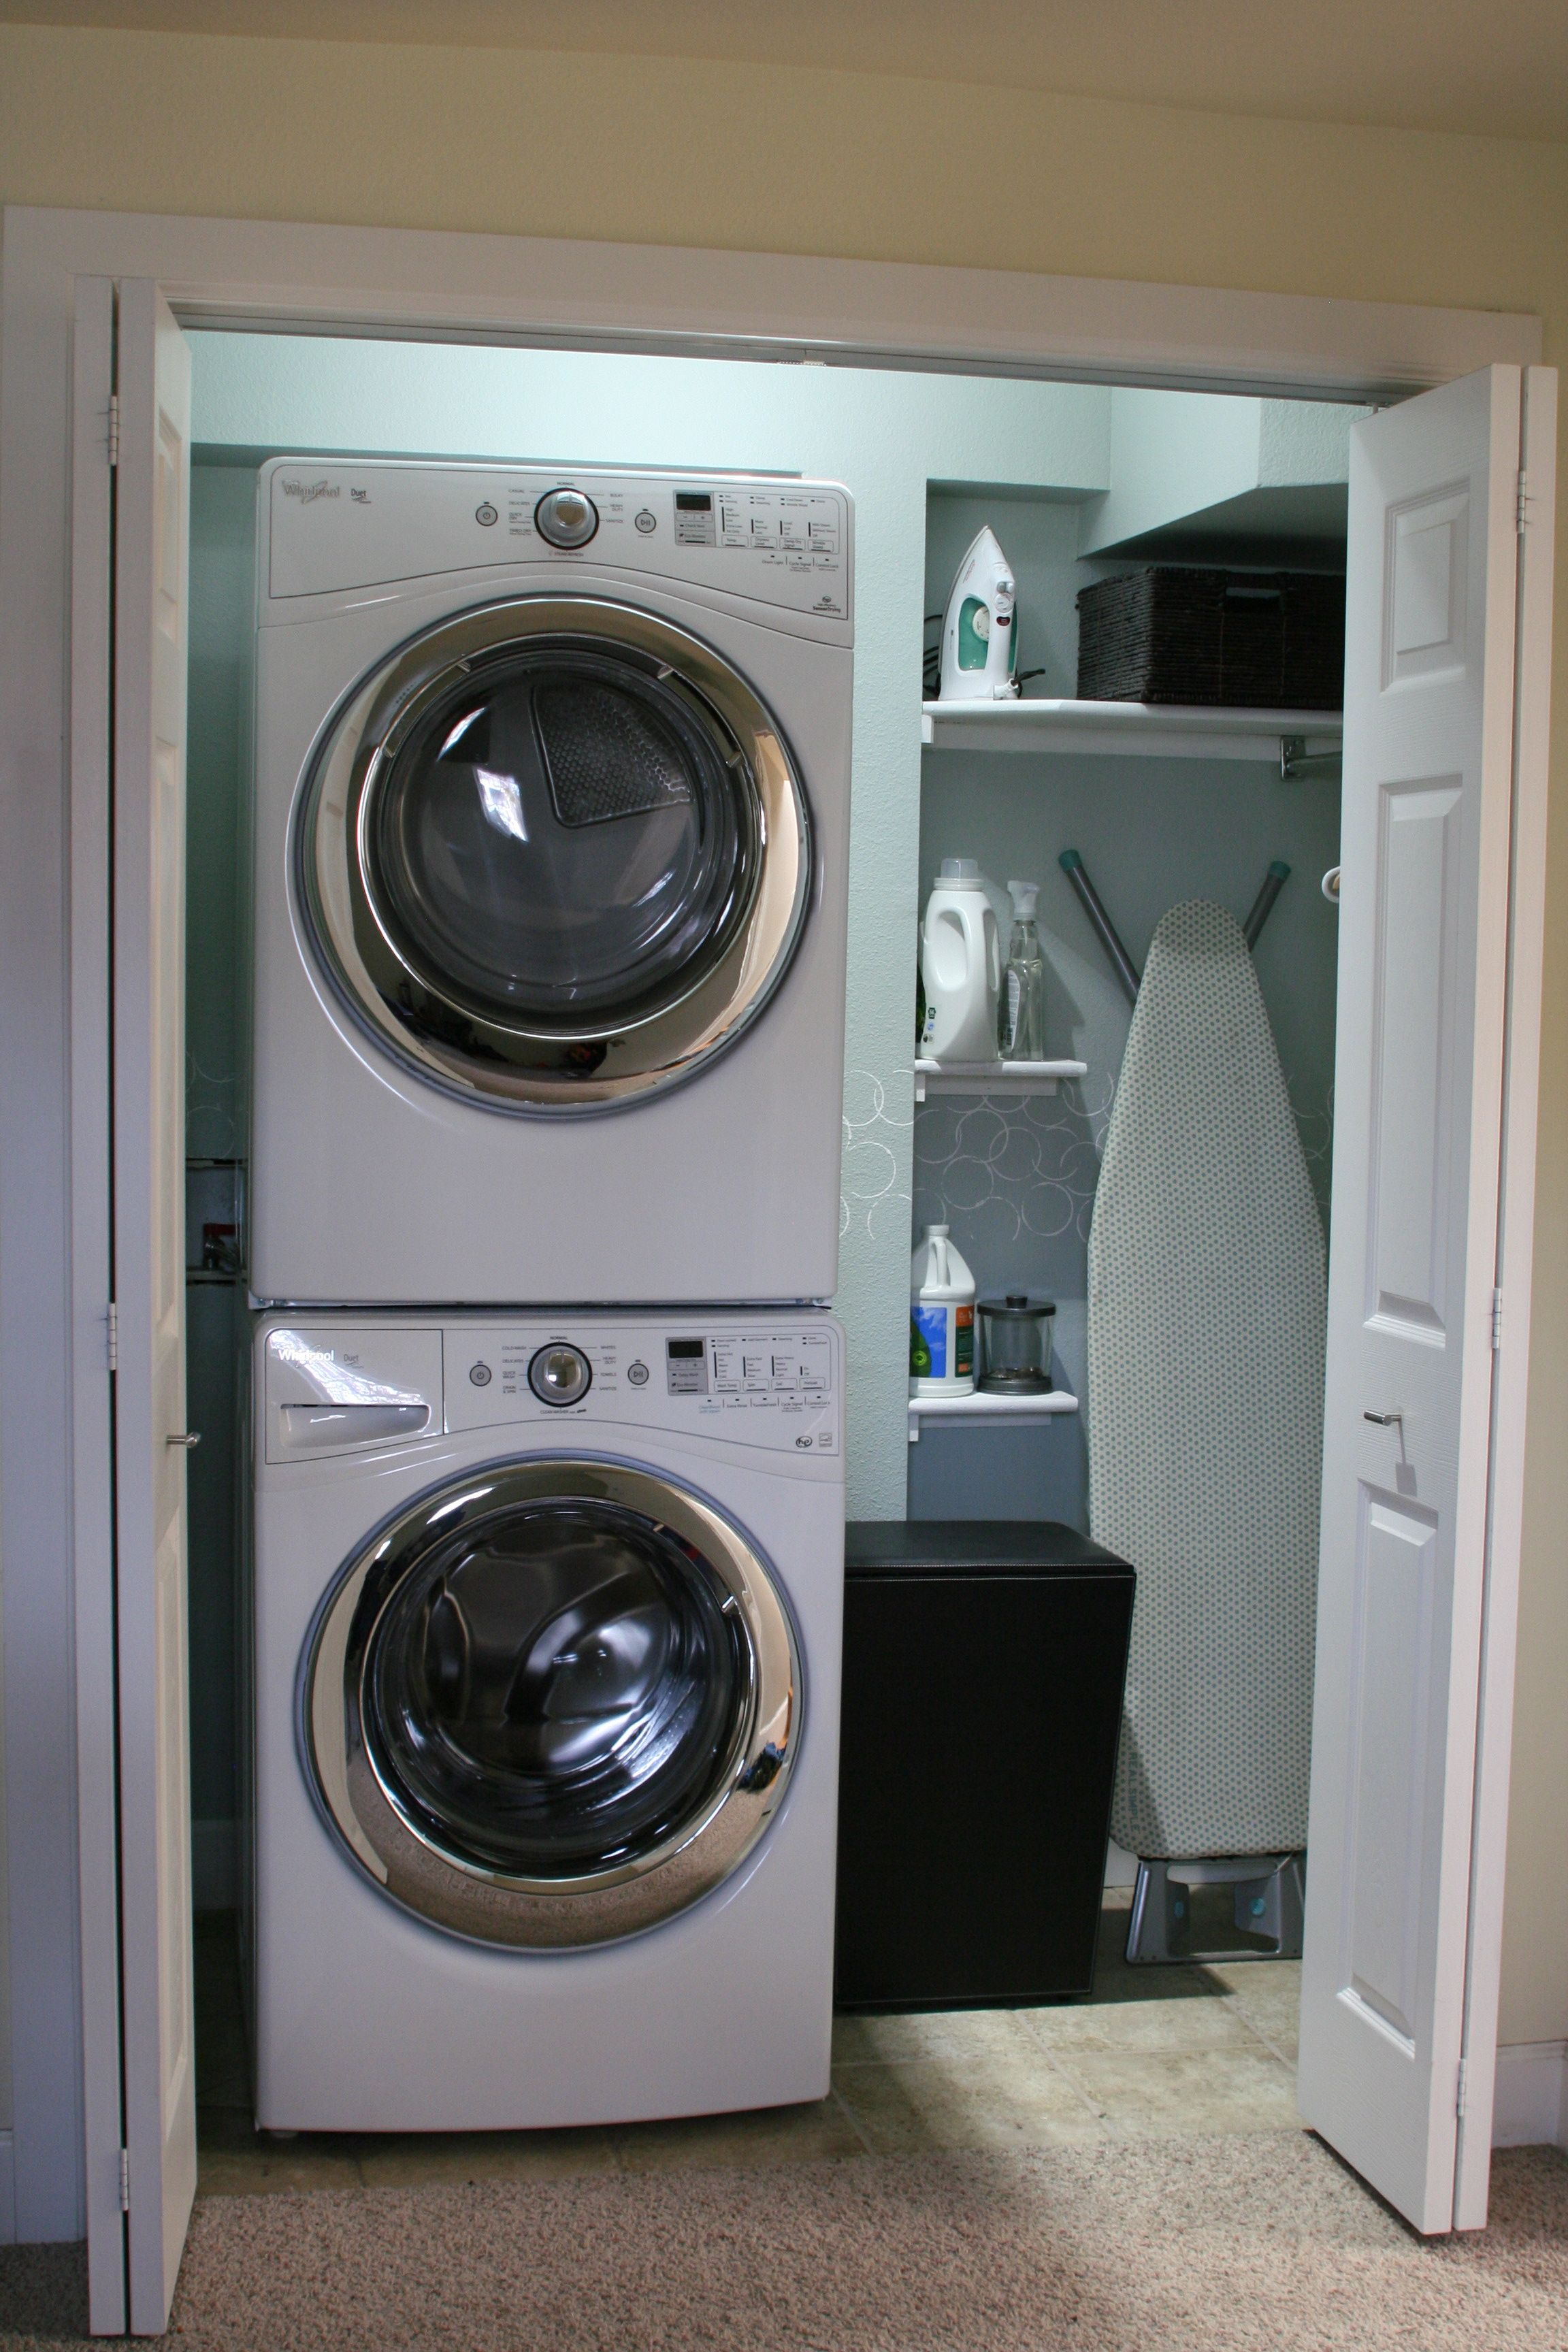 Laundry Room Small Laundry Room Makeover Design With Top Loading Washer And Wooden Door Ideas Inspiring Small Laundry Room Ideas to Saving Small Spaces